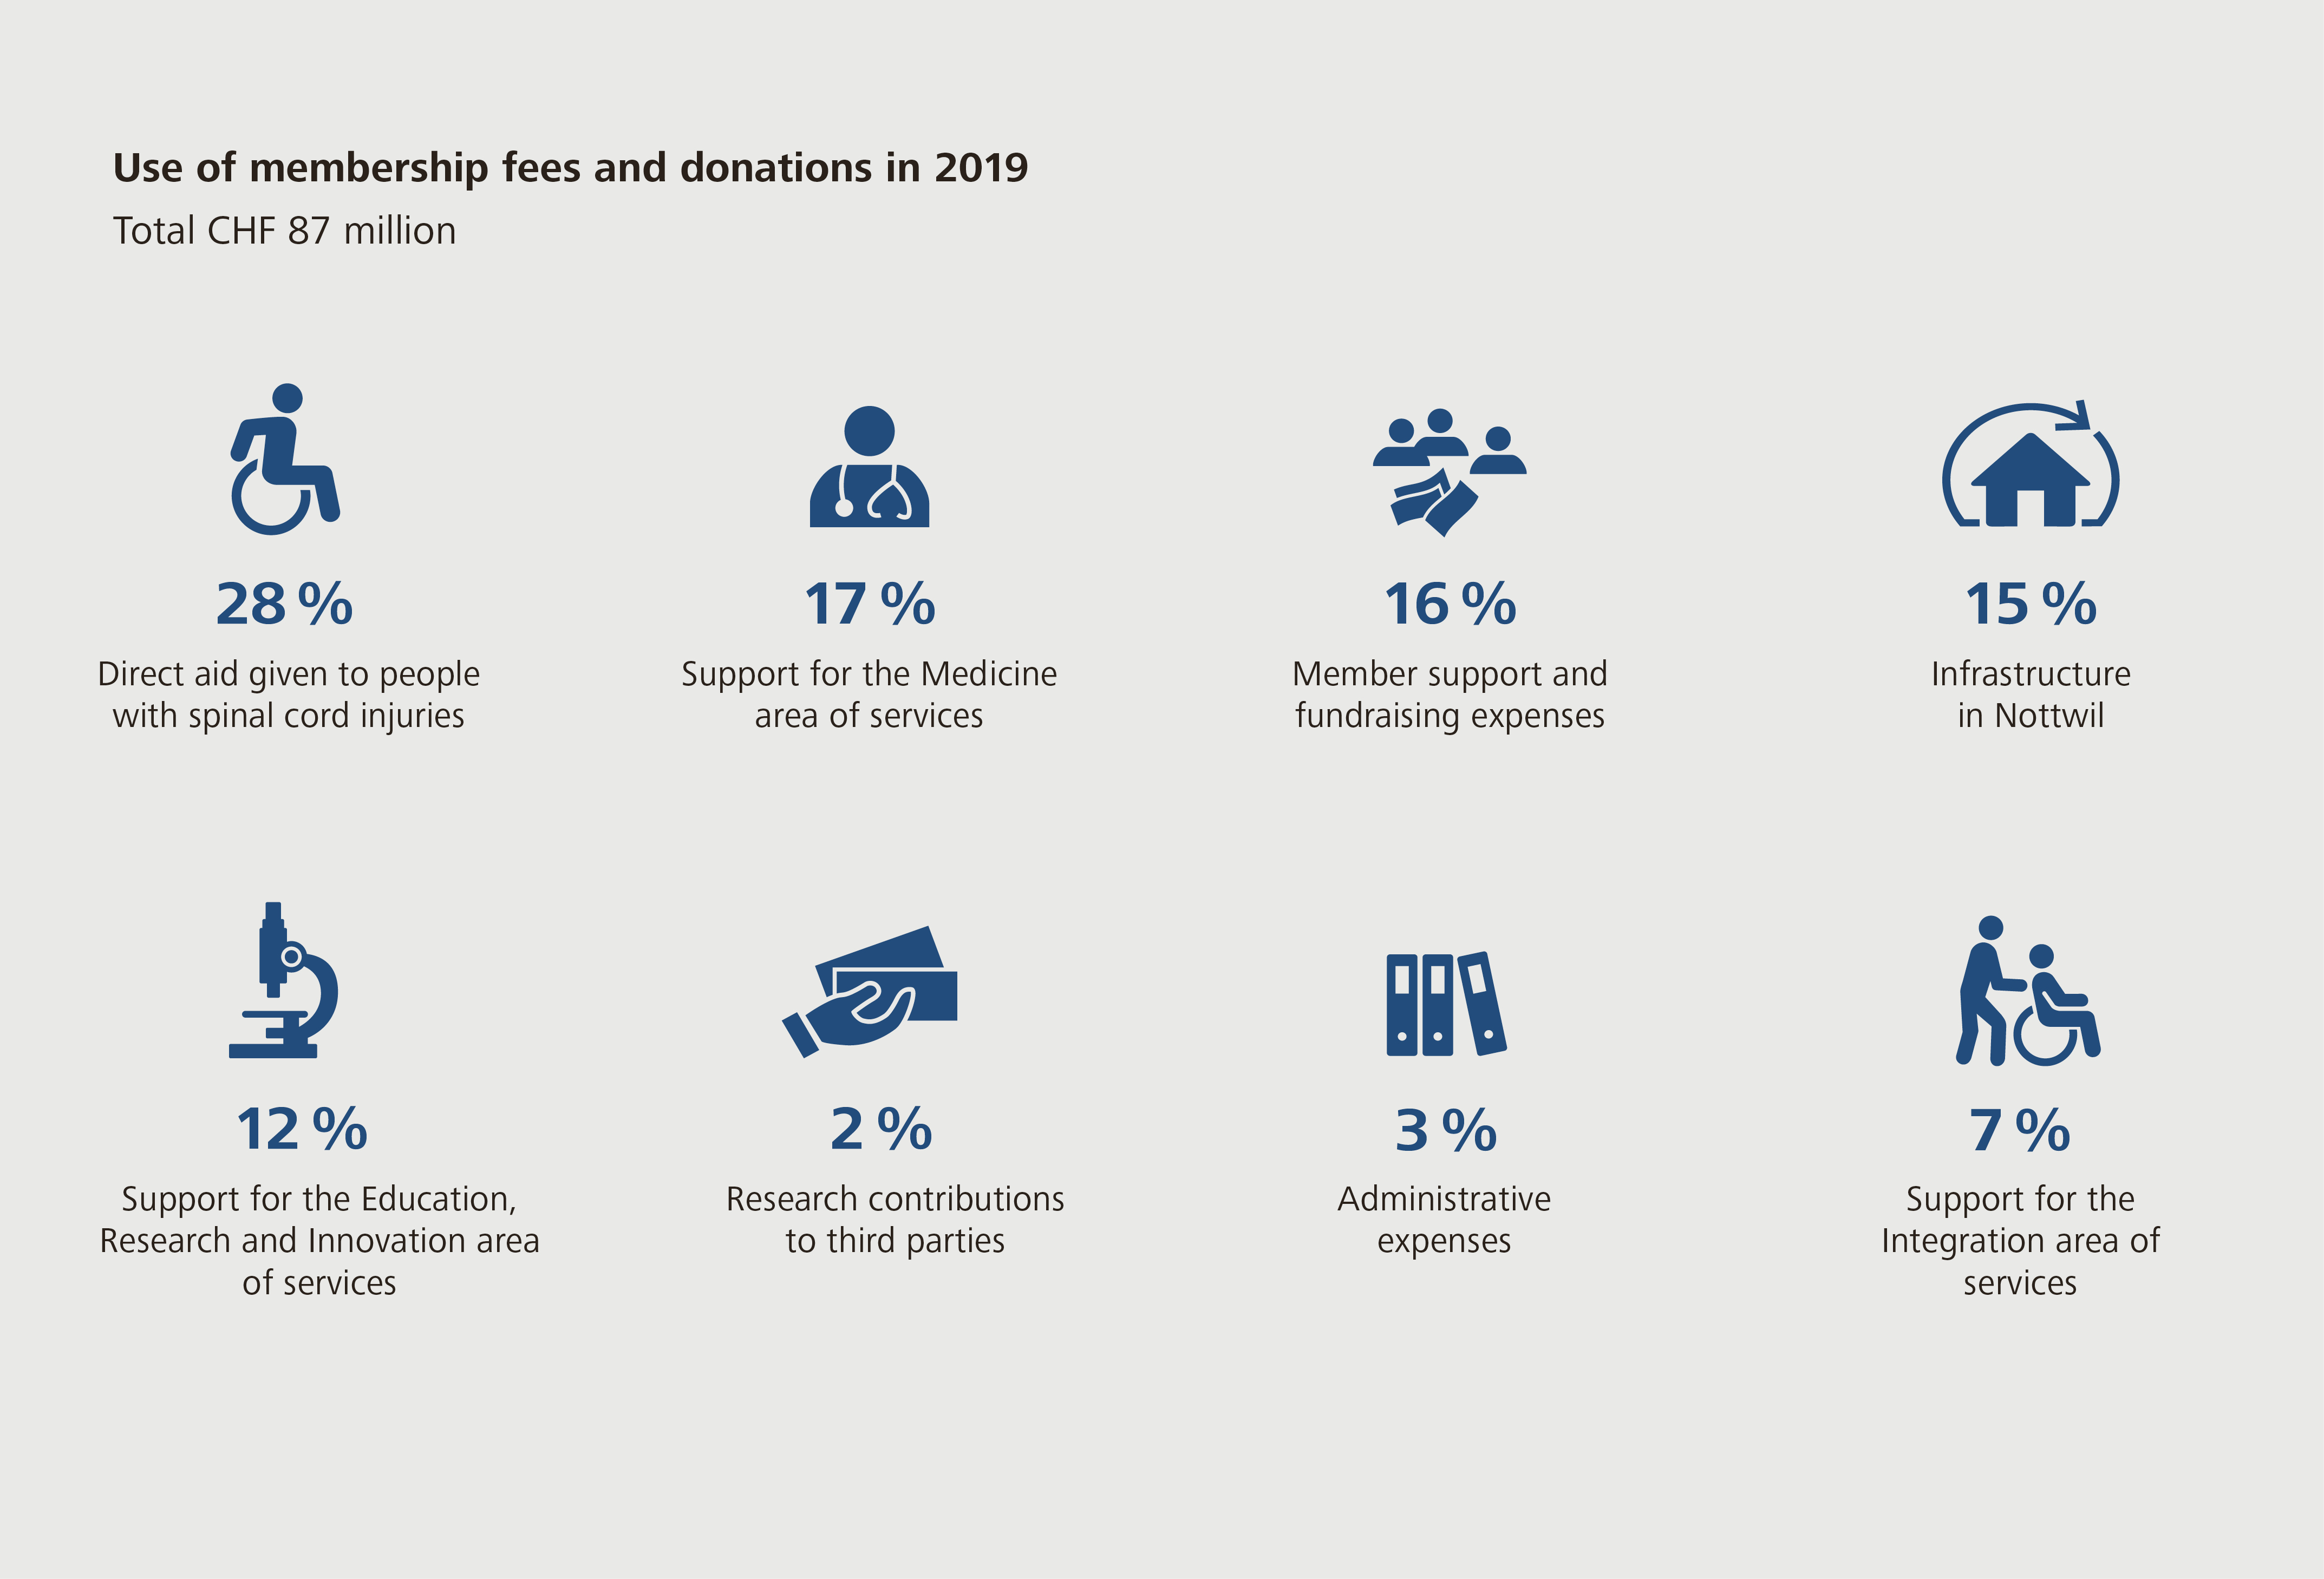 Use of membership fees and donations in 2019